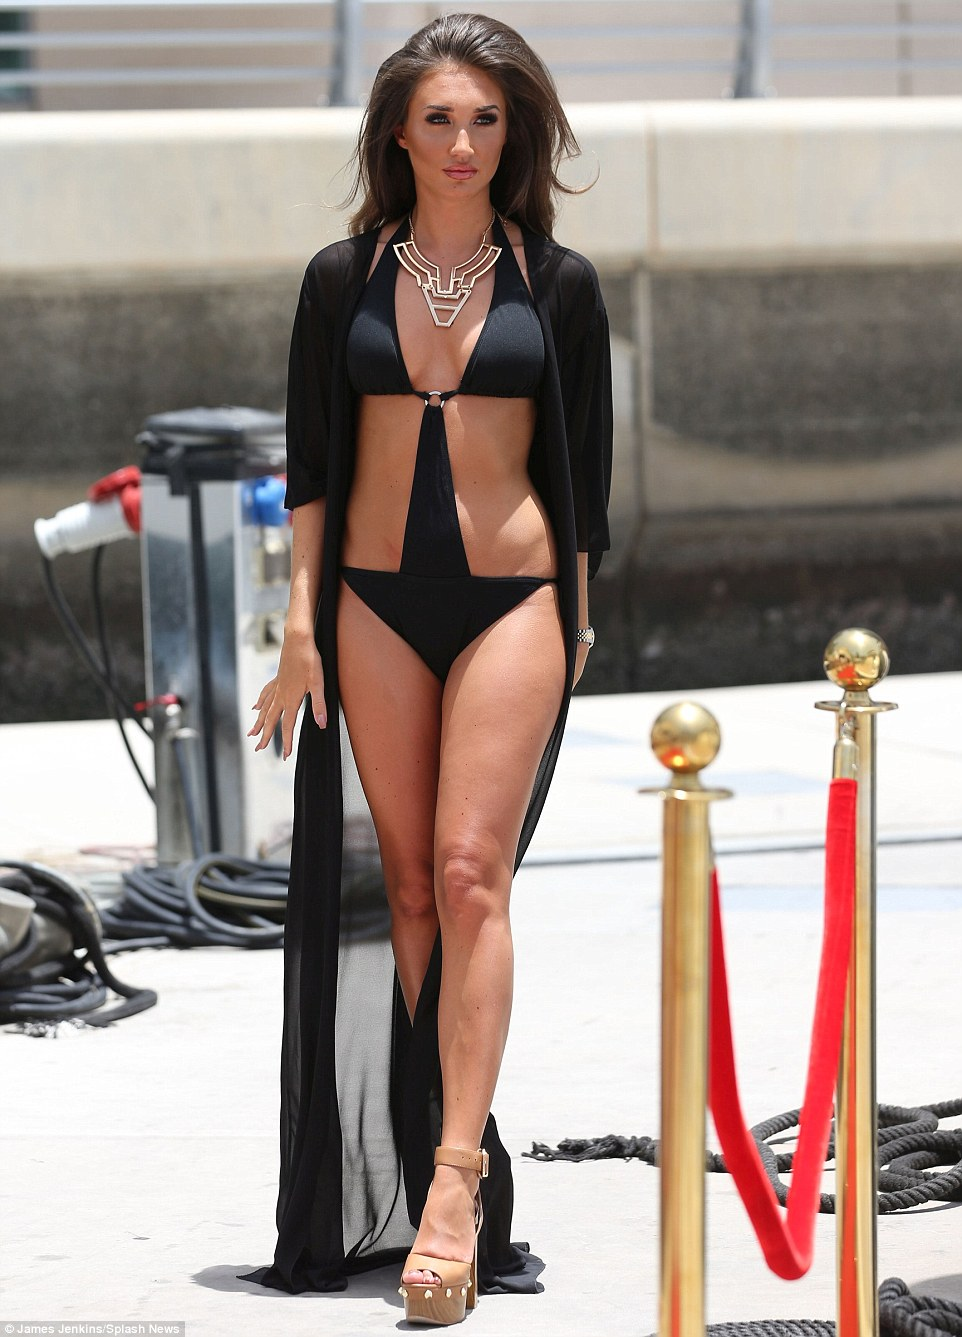 TOWIEs Megan McKenna Sizzles In A Skimpy Black Swimsuit